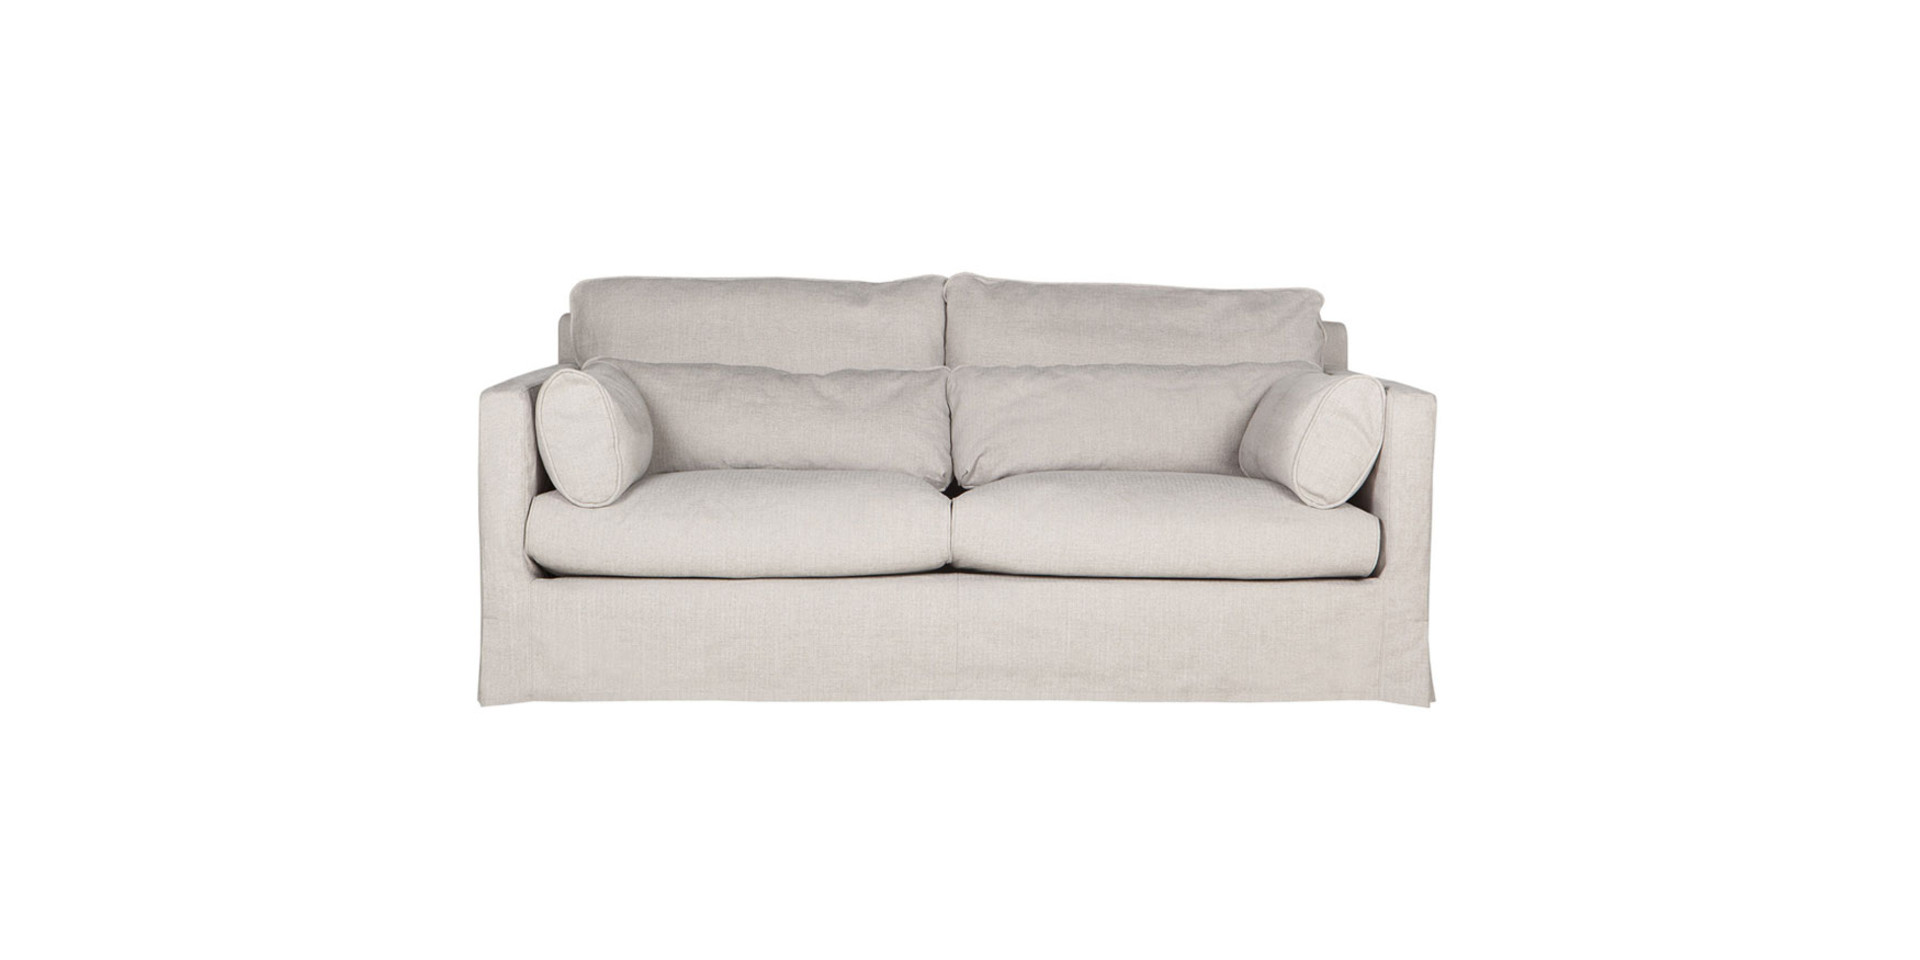 sits-sara-canape-2seater_flossy6_light_grey_1